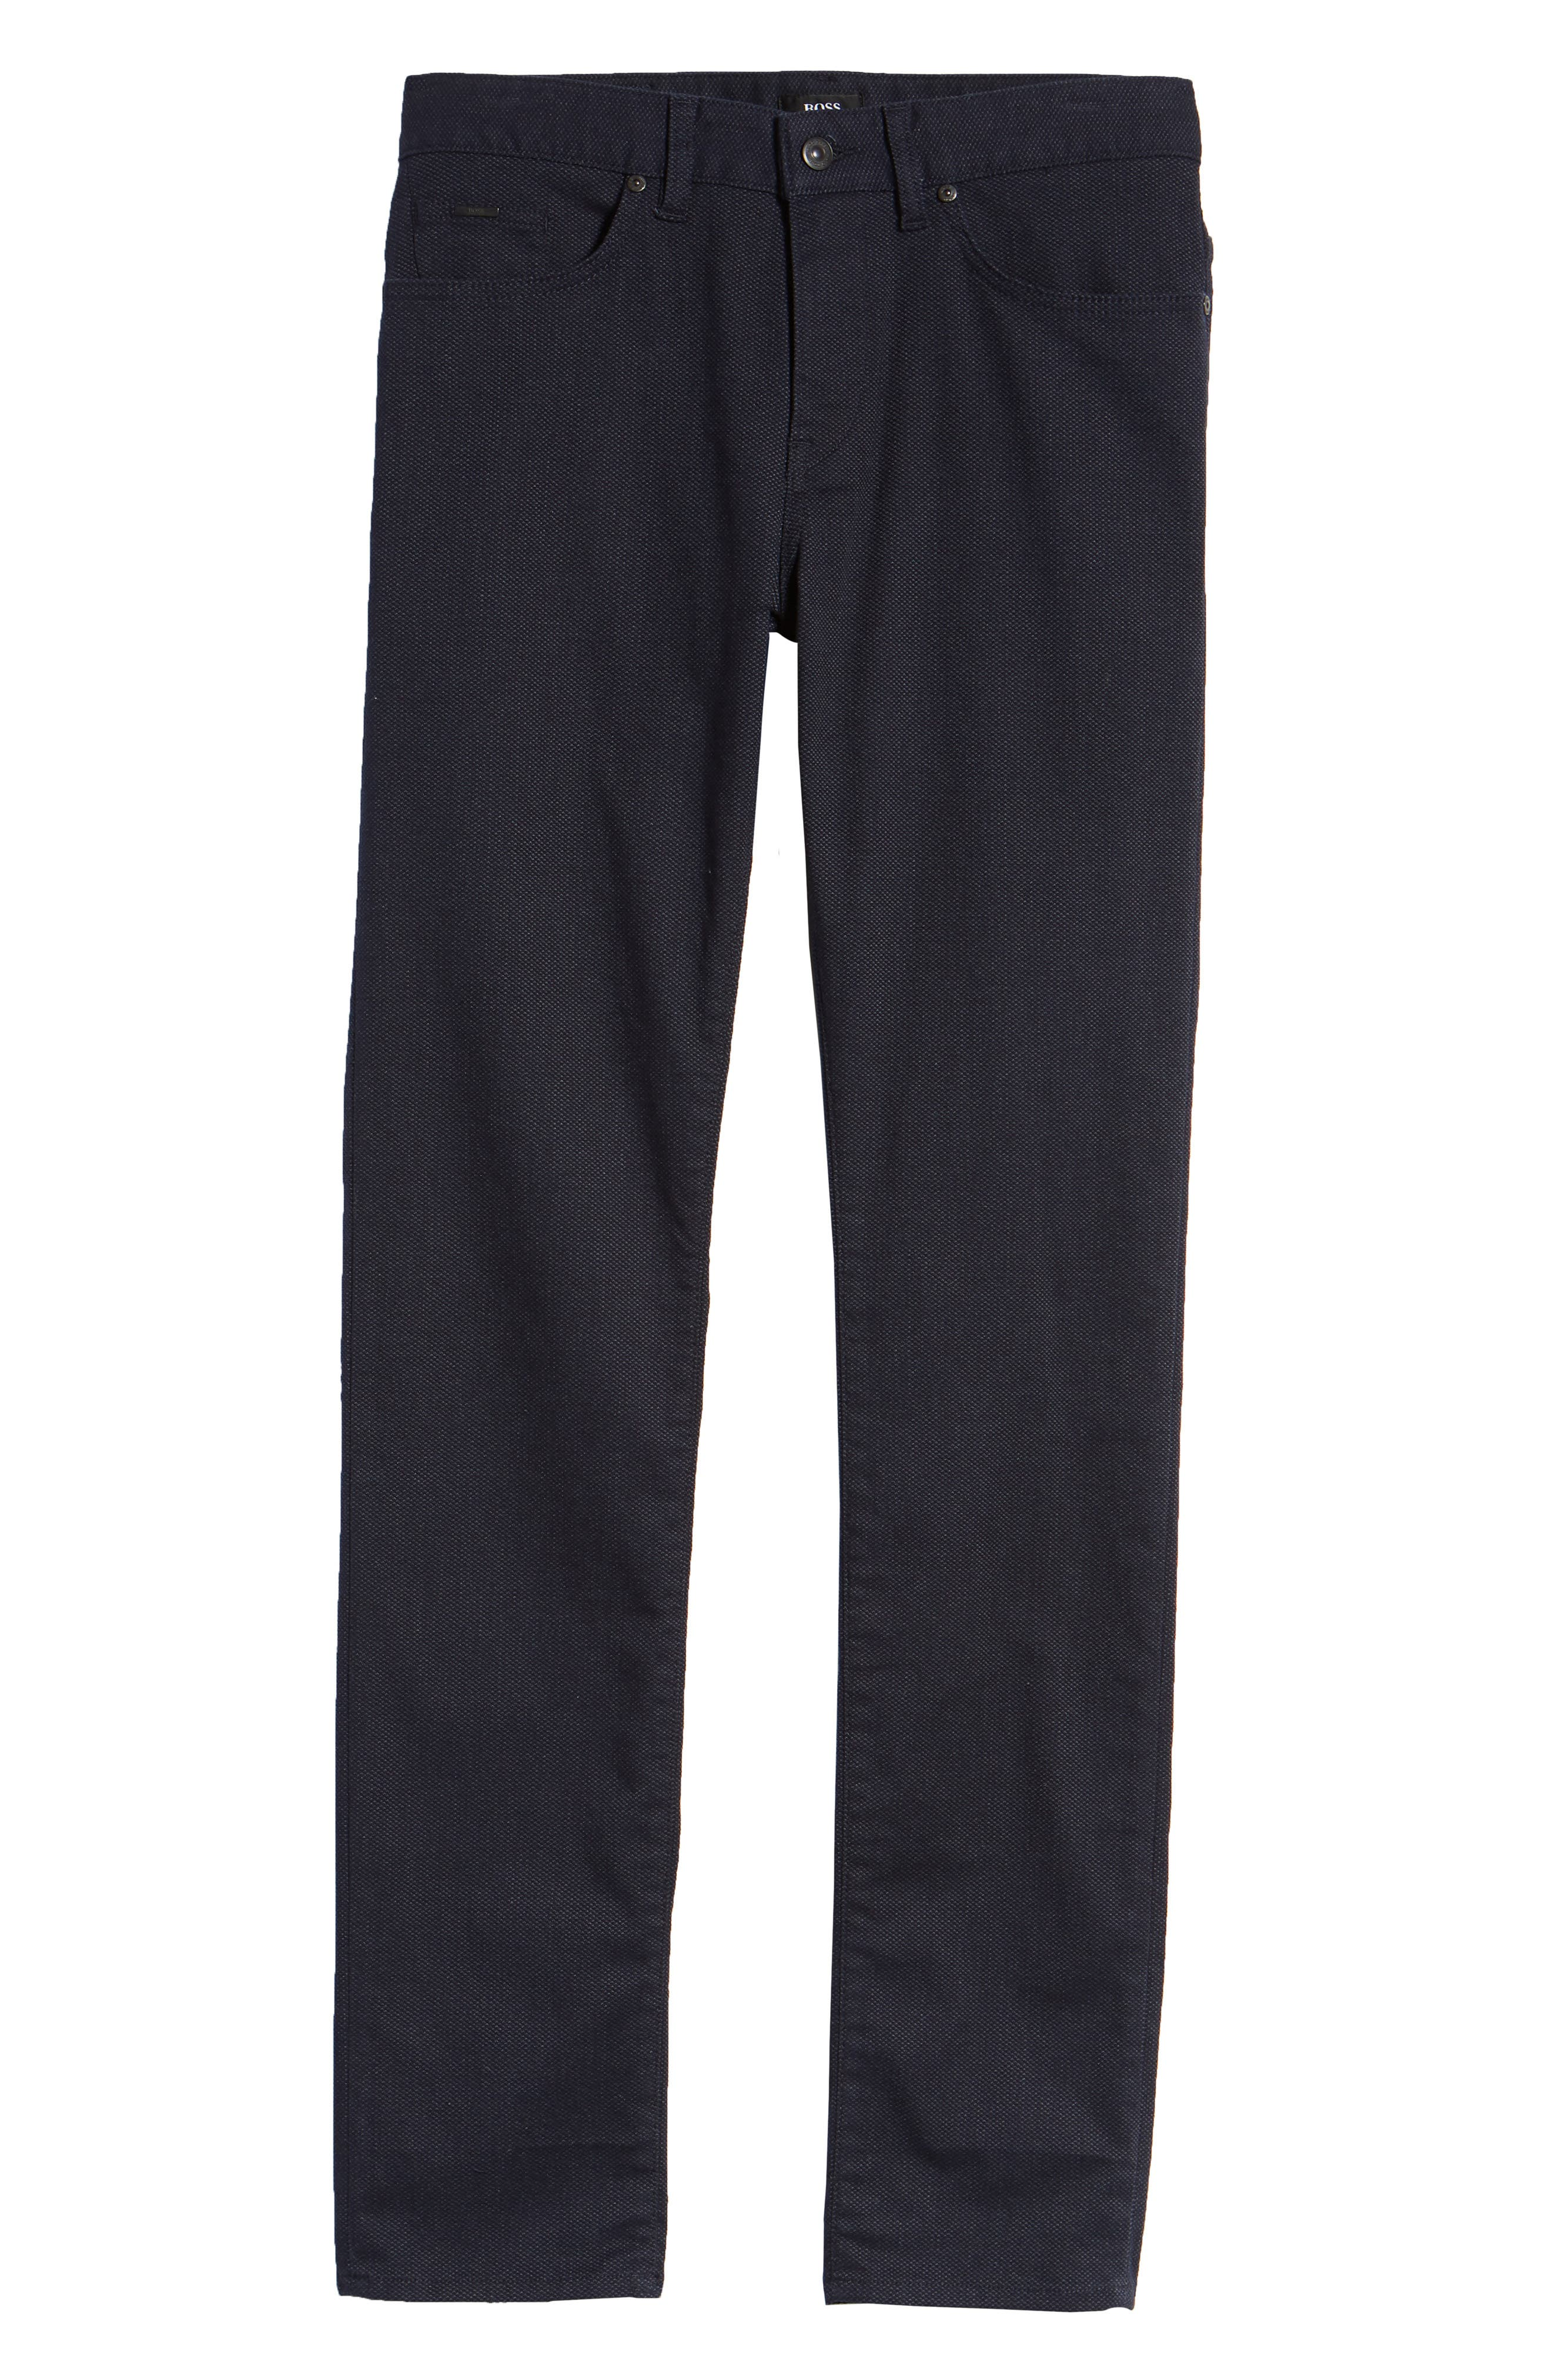 Delaware Slim Fit Jeans,                             Alternate thumbnail 6, color,                             NAVY